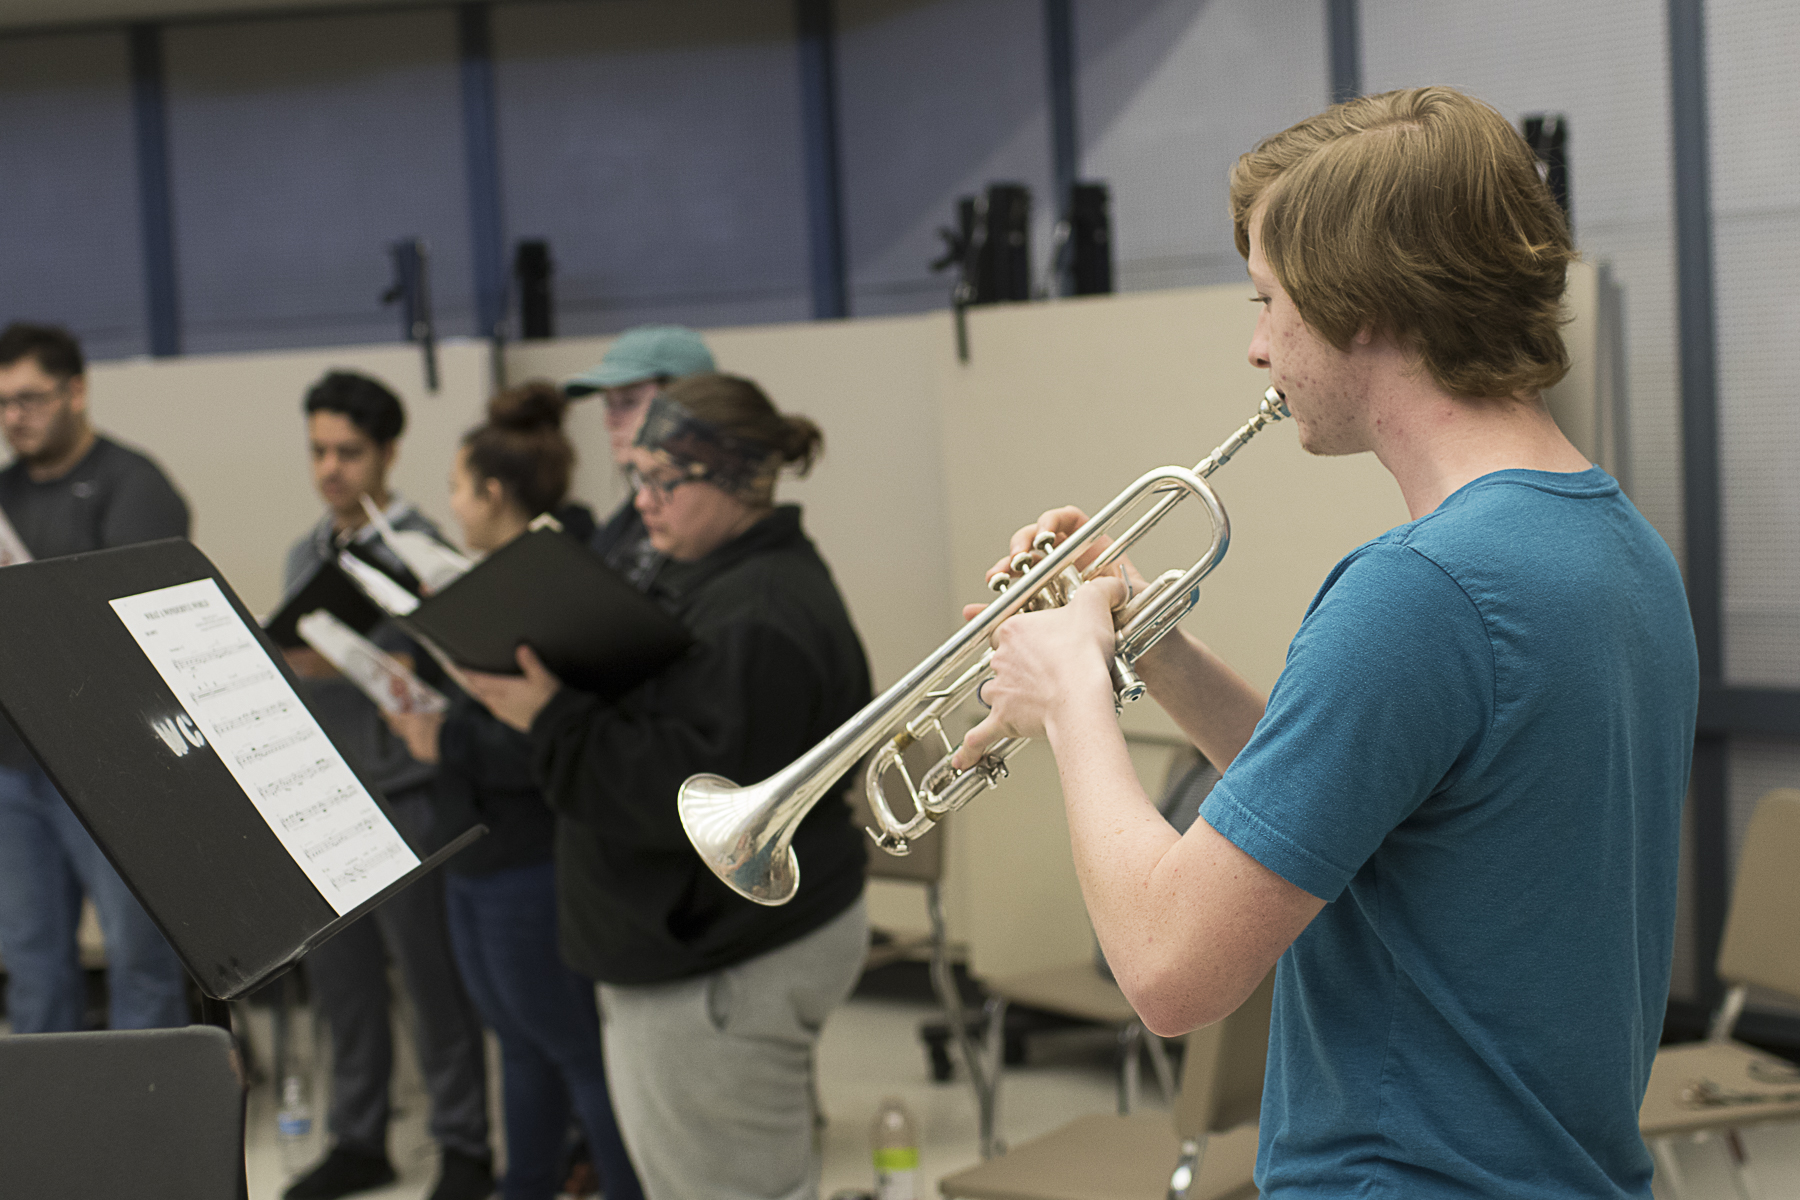 WCJC Band trumpet player Ethan Weinberg of Danevang rehearses with WCJC Choir members